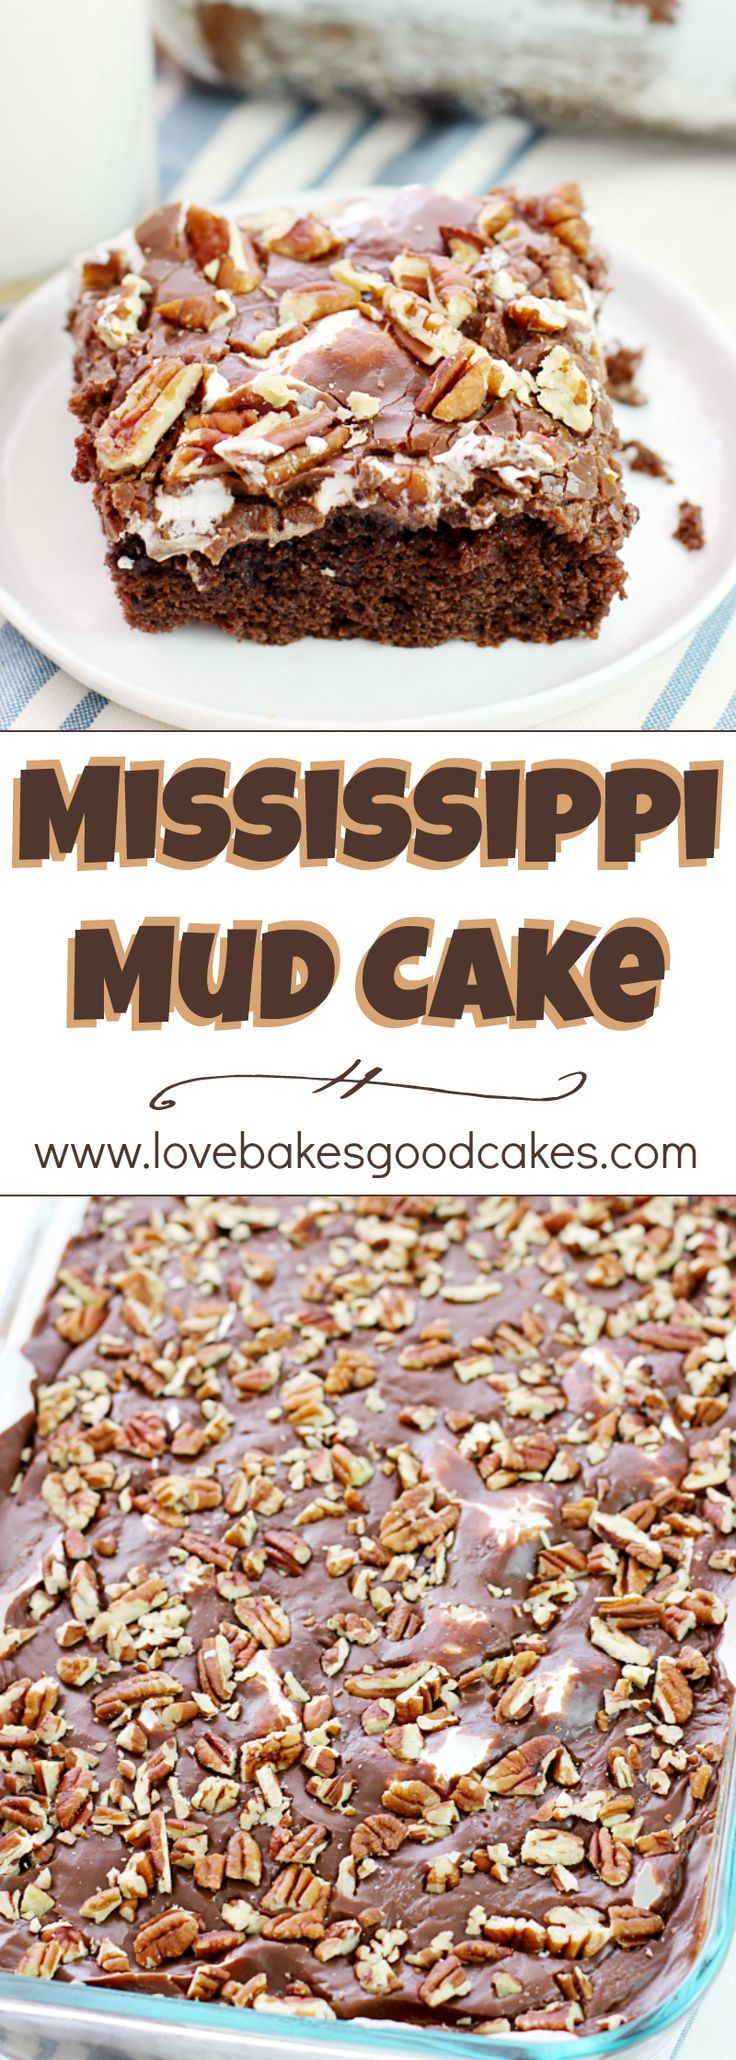 Mississippi Mud Cake - a Southern classic cake with chocolate, marshmallows, and pecans! Everyone asks for THIS recipe!!: